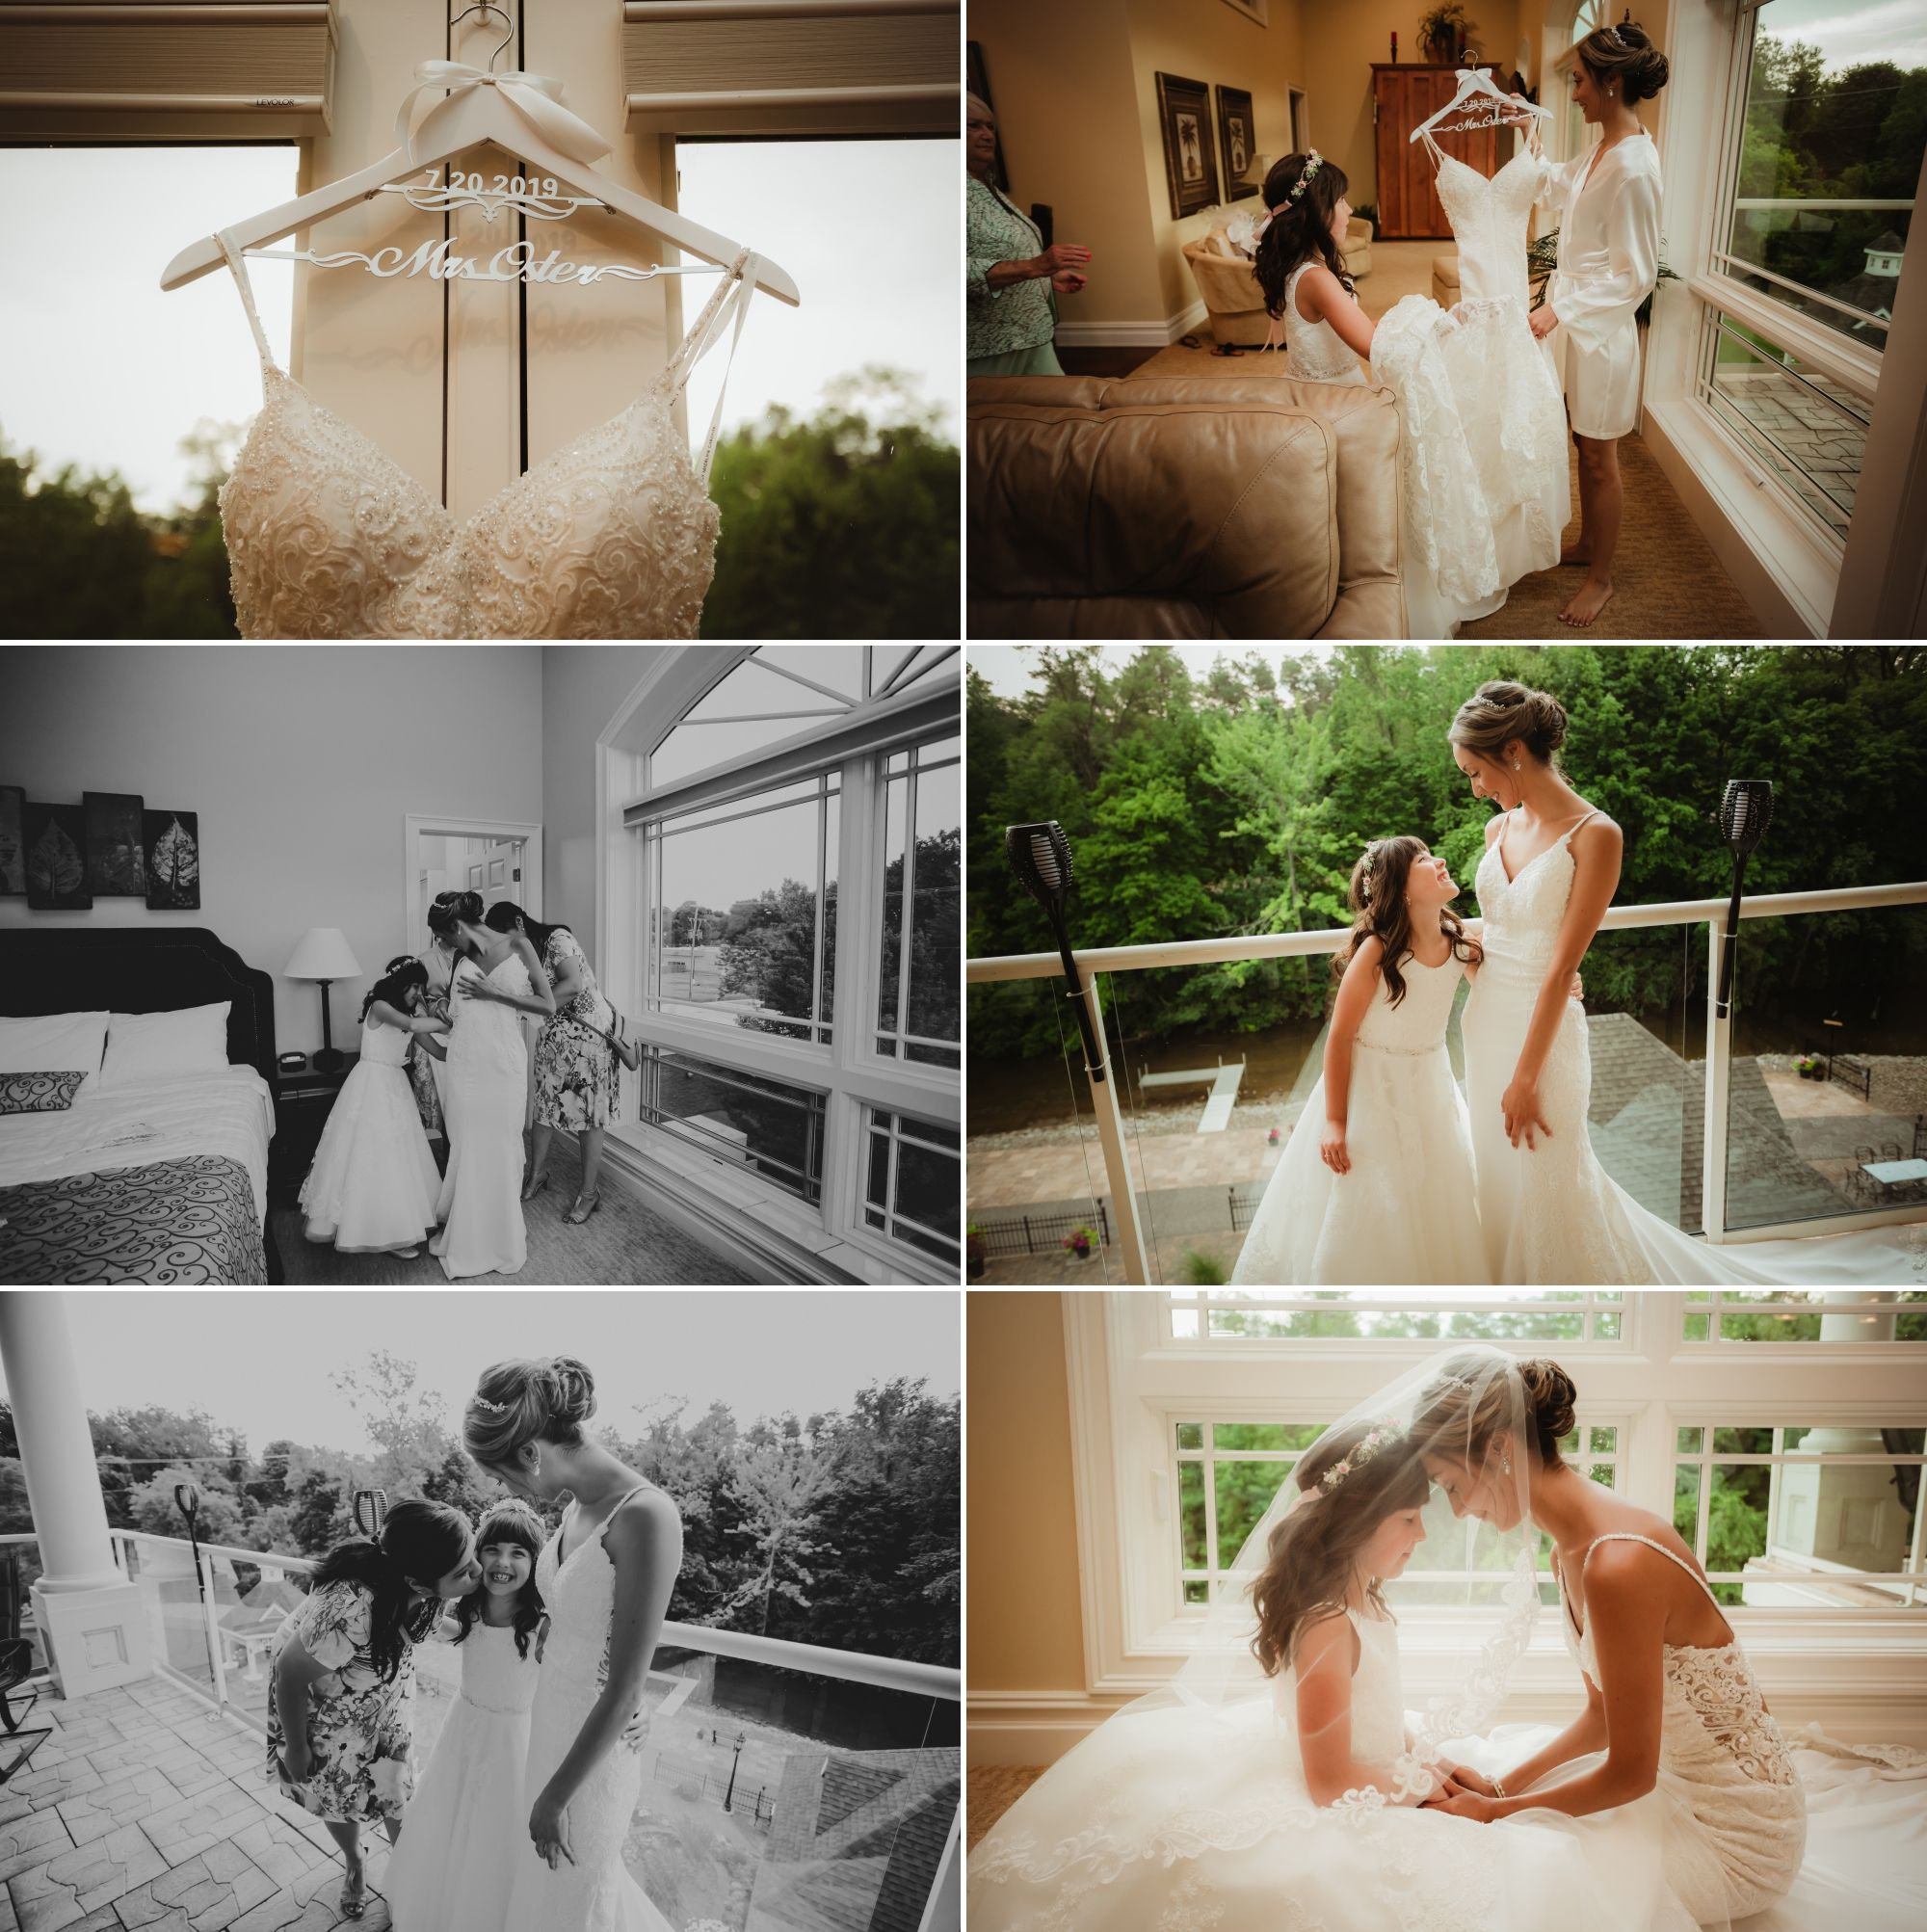 Photos of bride and flower girl getting ready together.